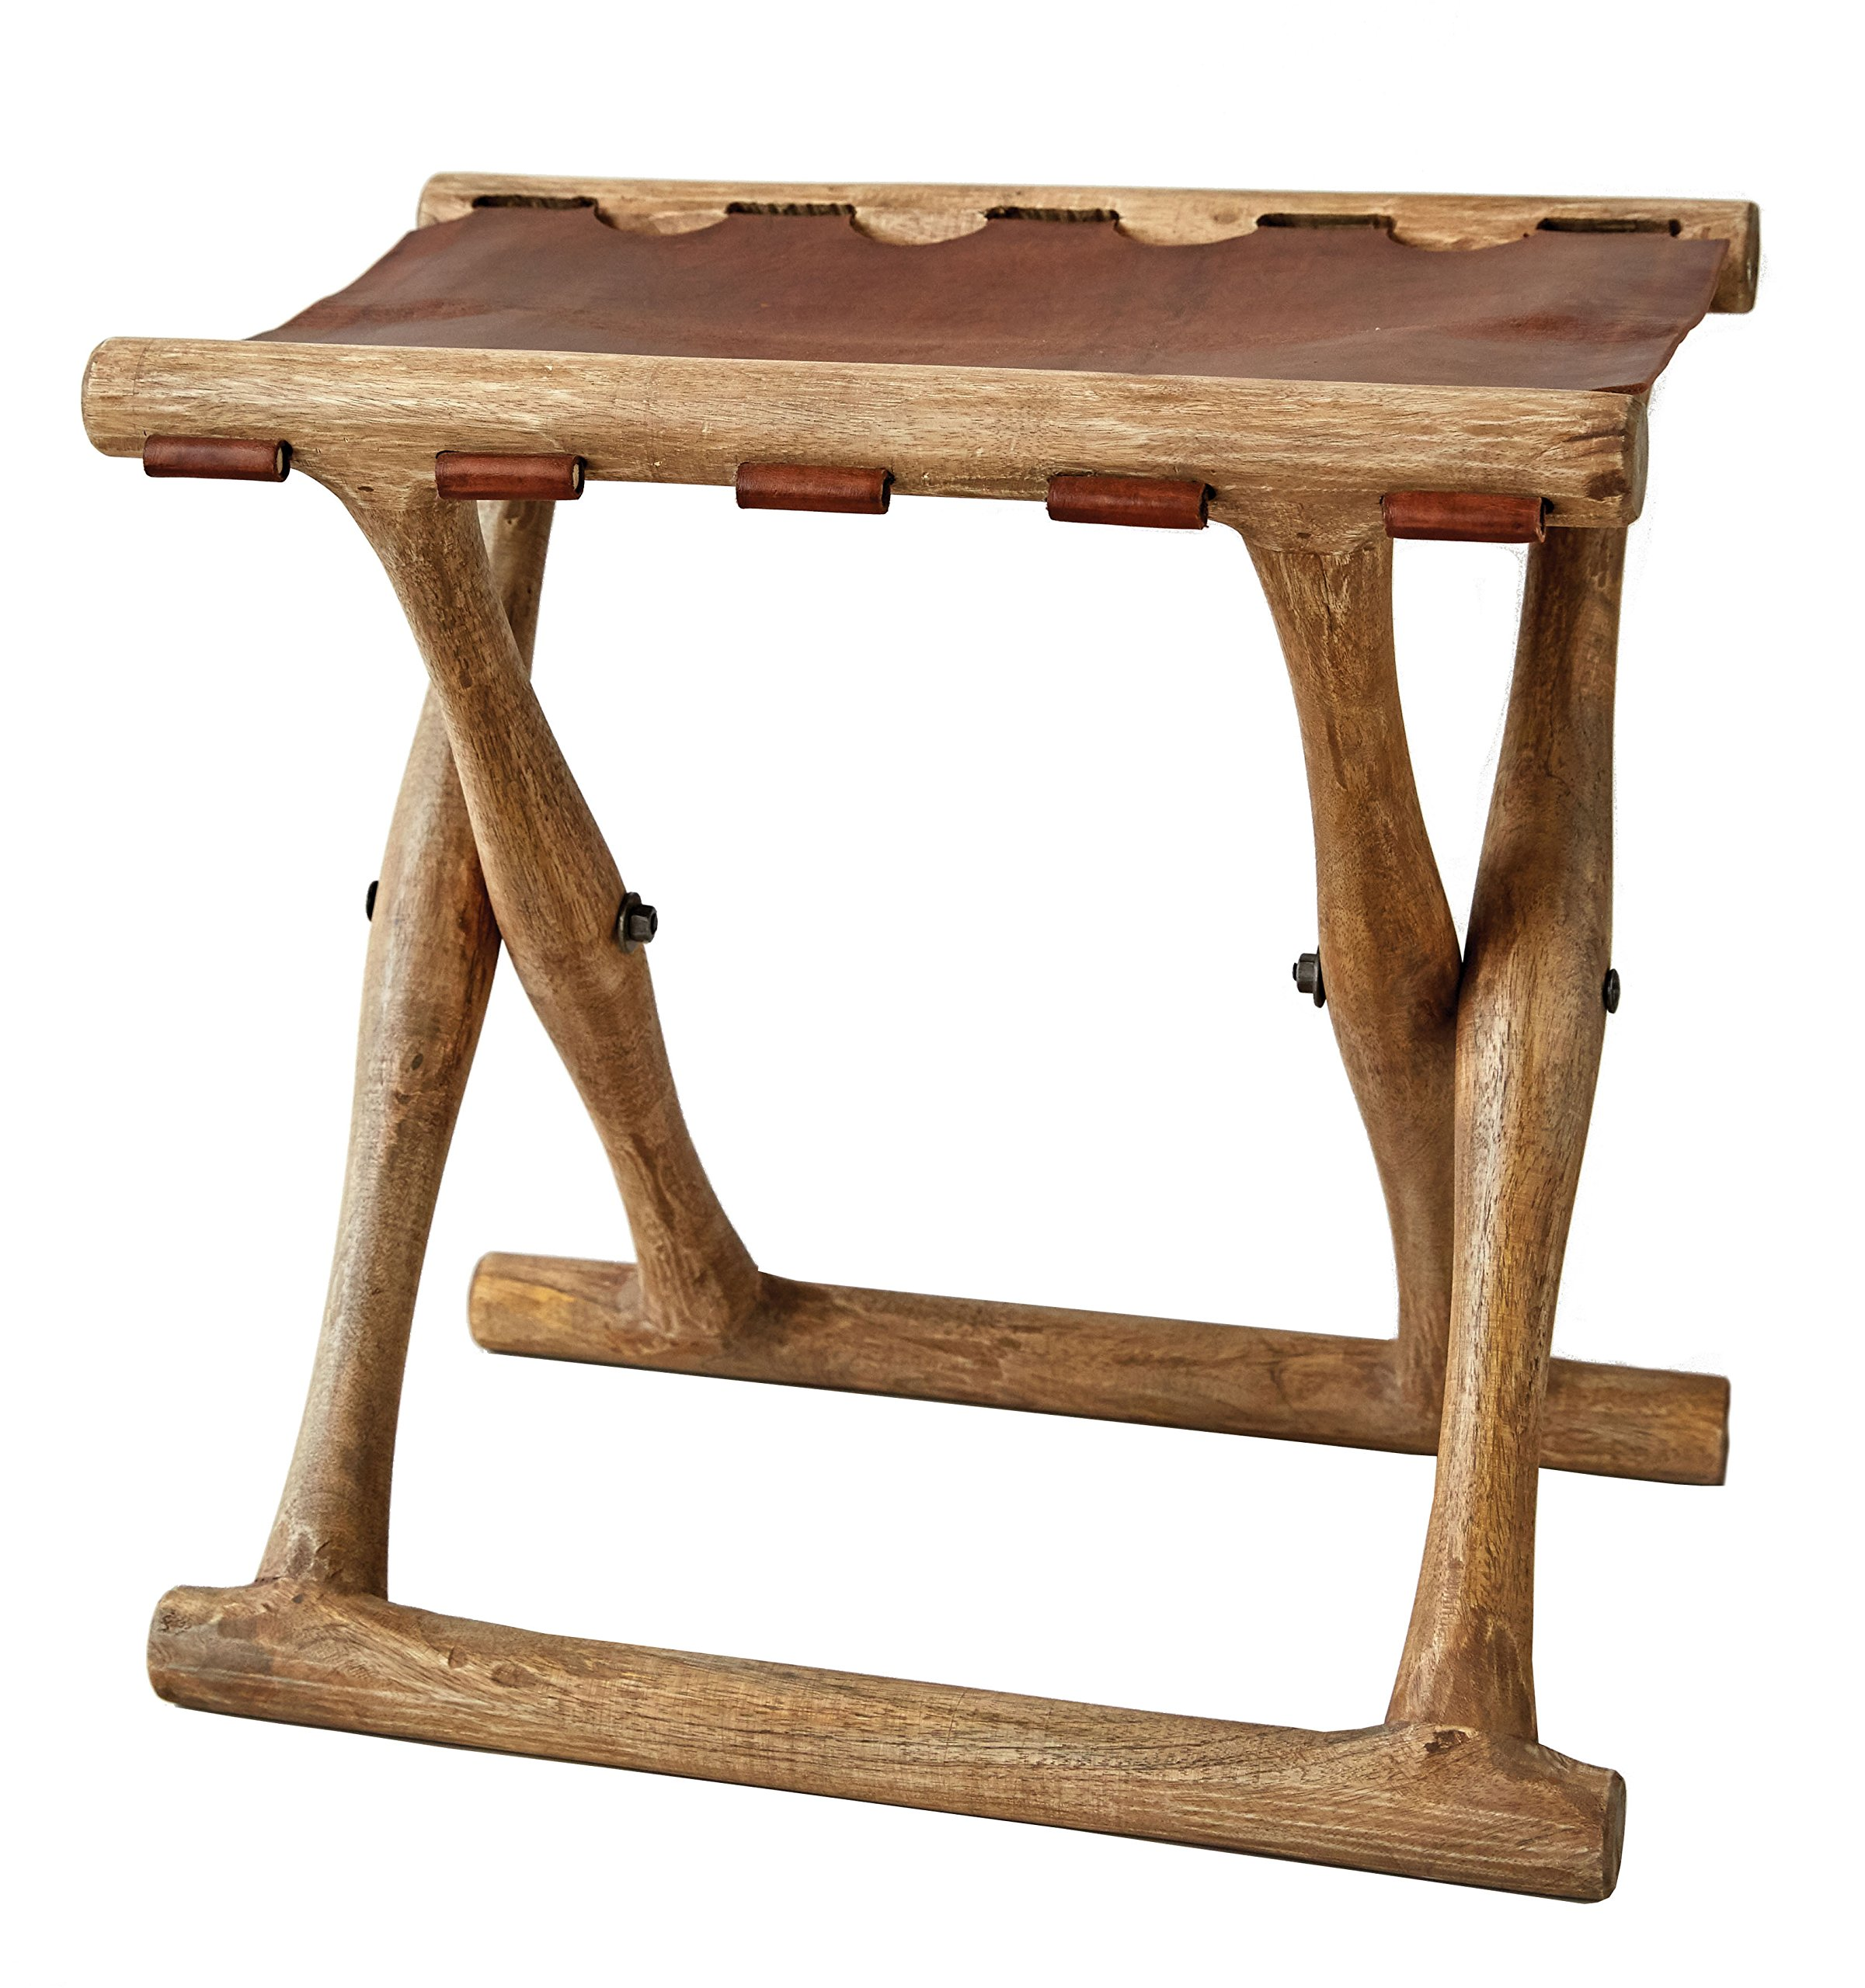 Creative Co-op Acacia Wood & Leather Folding Stool by Creative Co-op